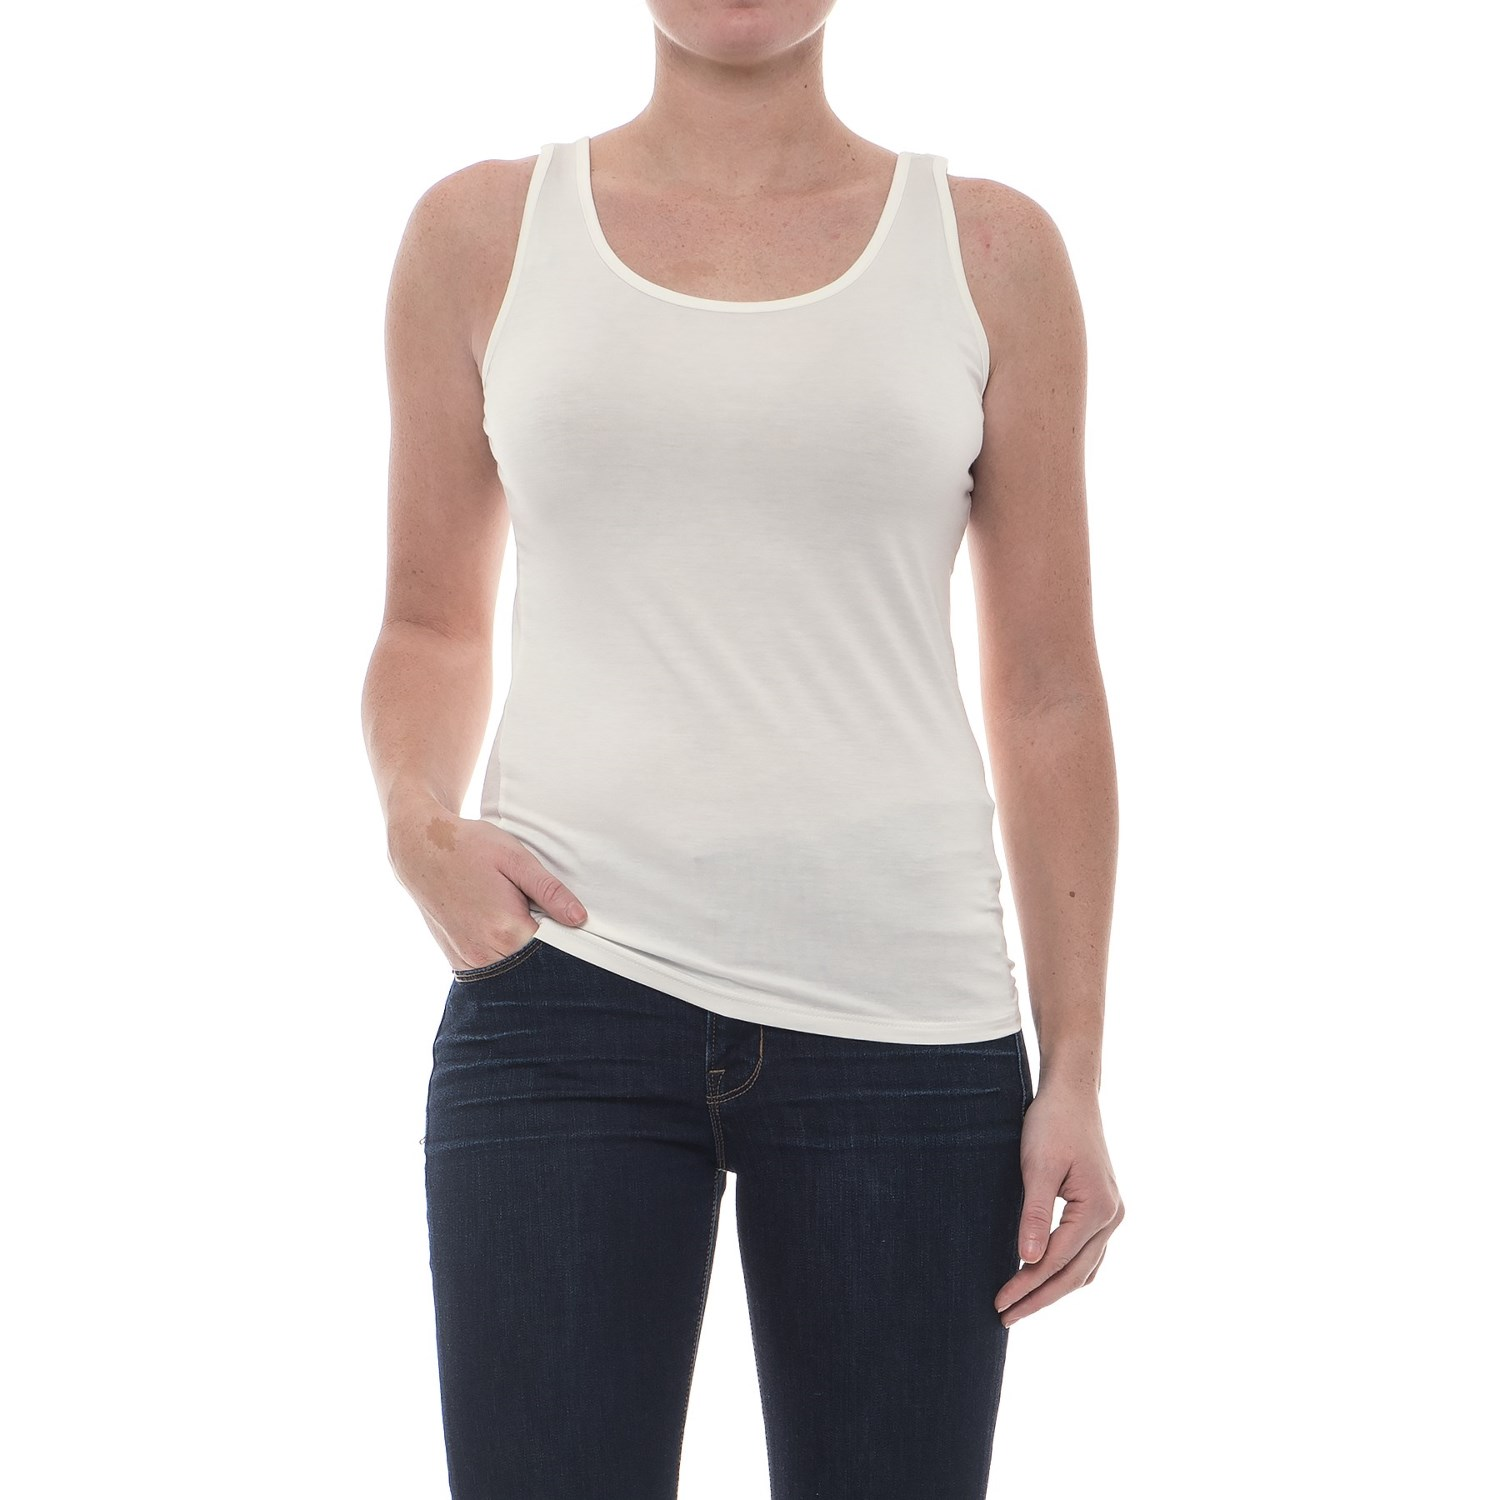 CG Cable & Gauge Ultra Rib Basic Tank Top (For Women) - Save 55%